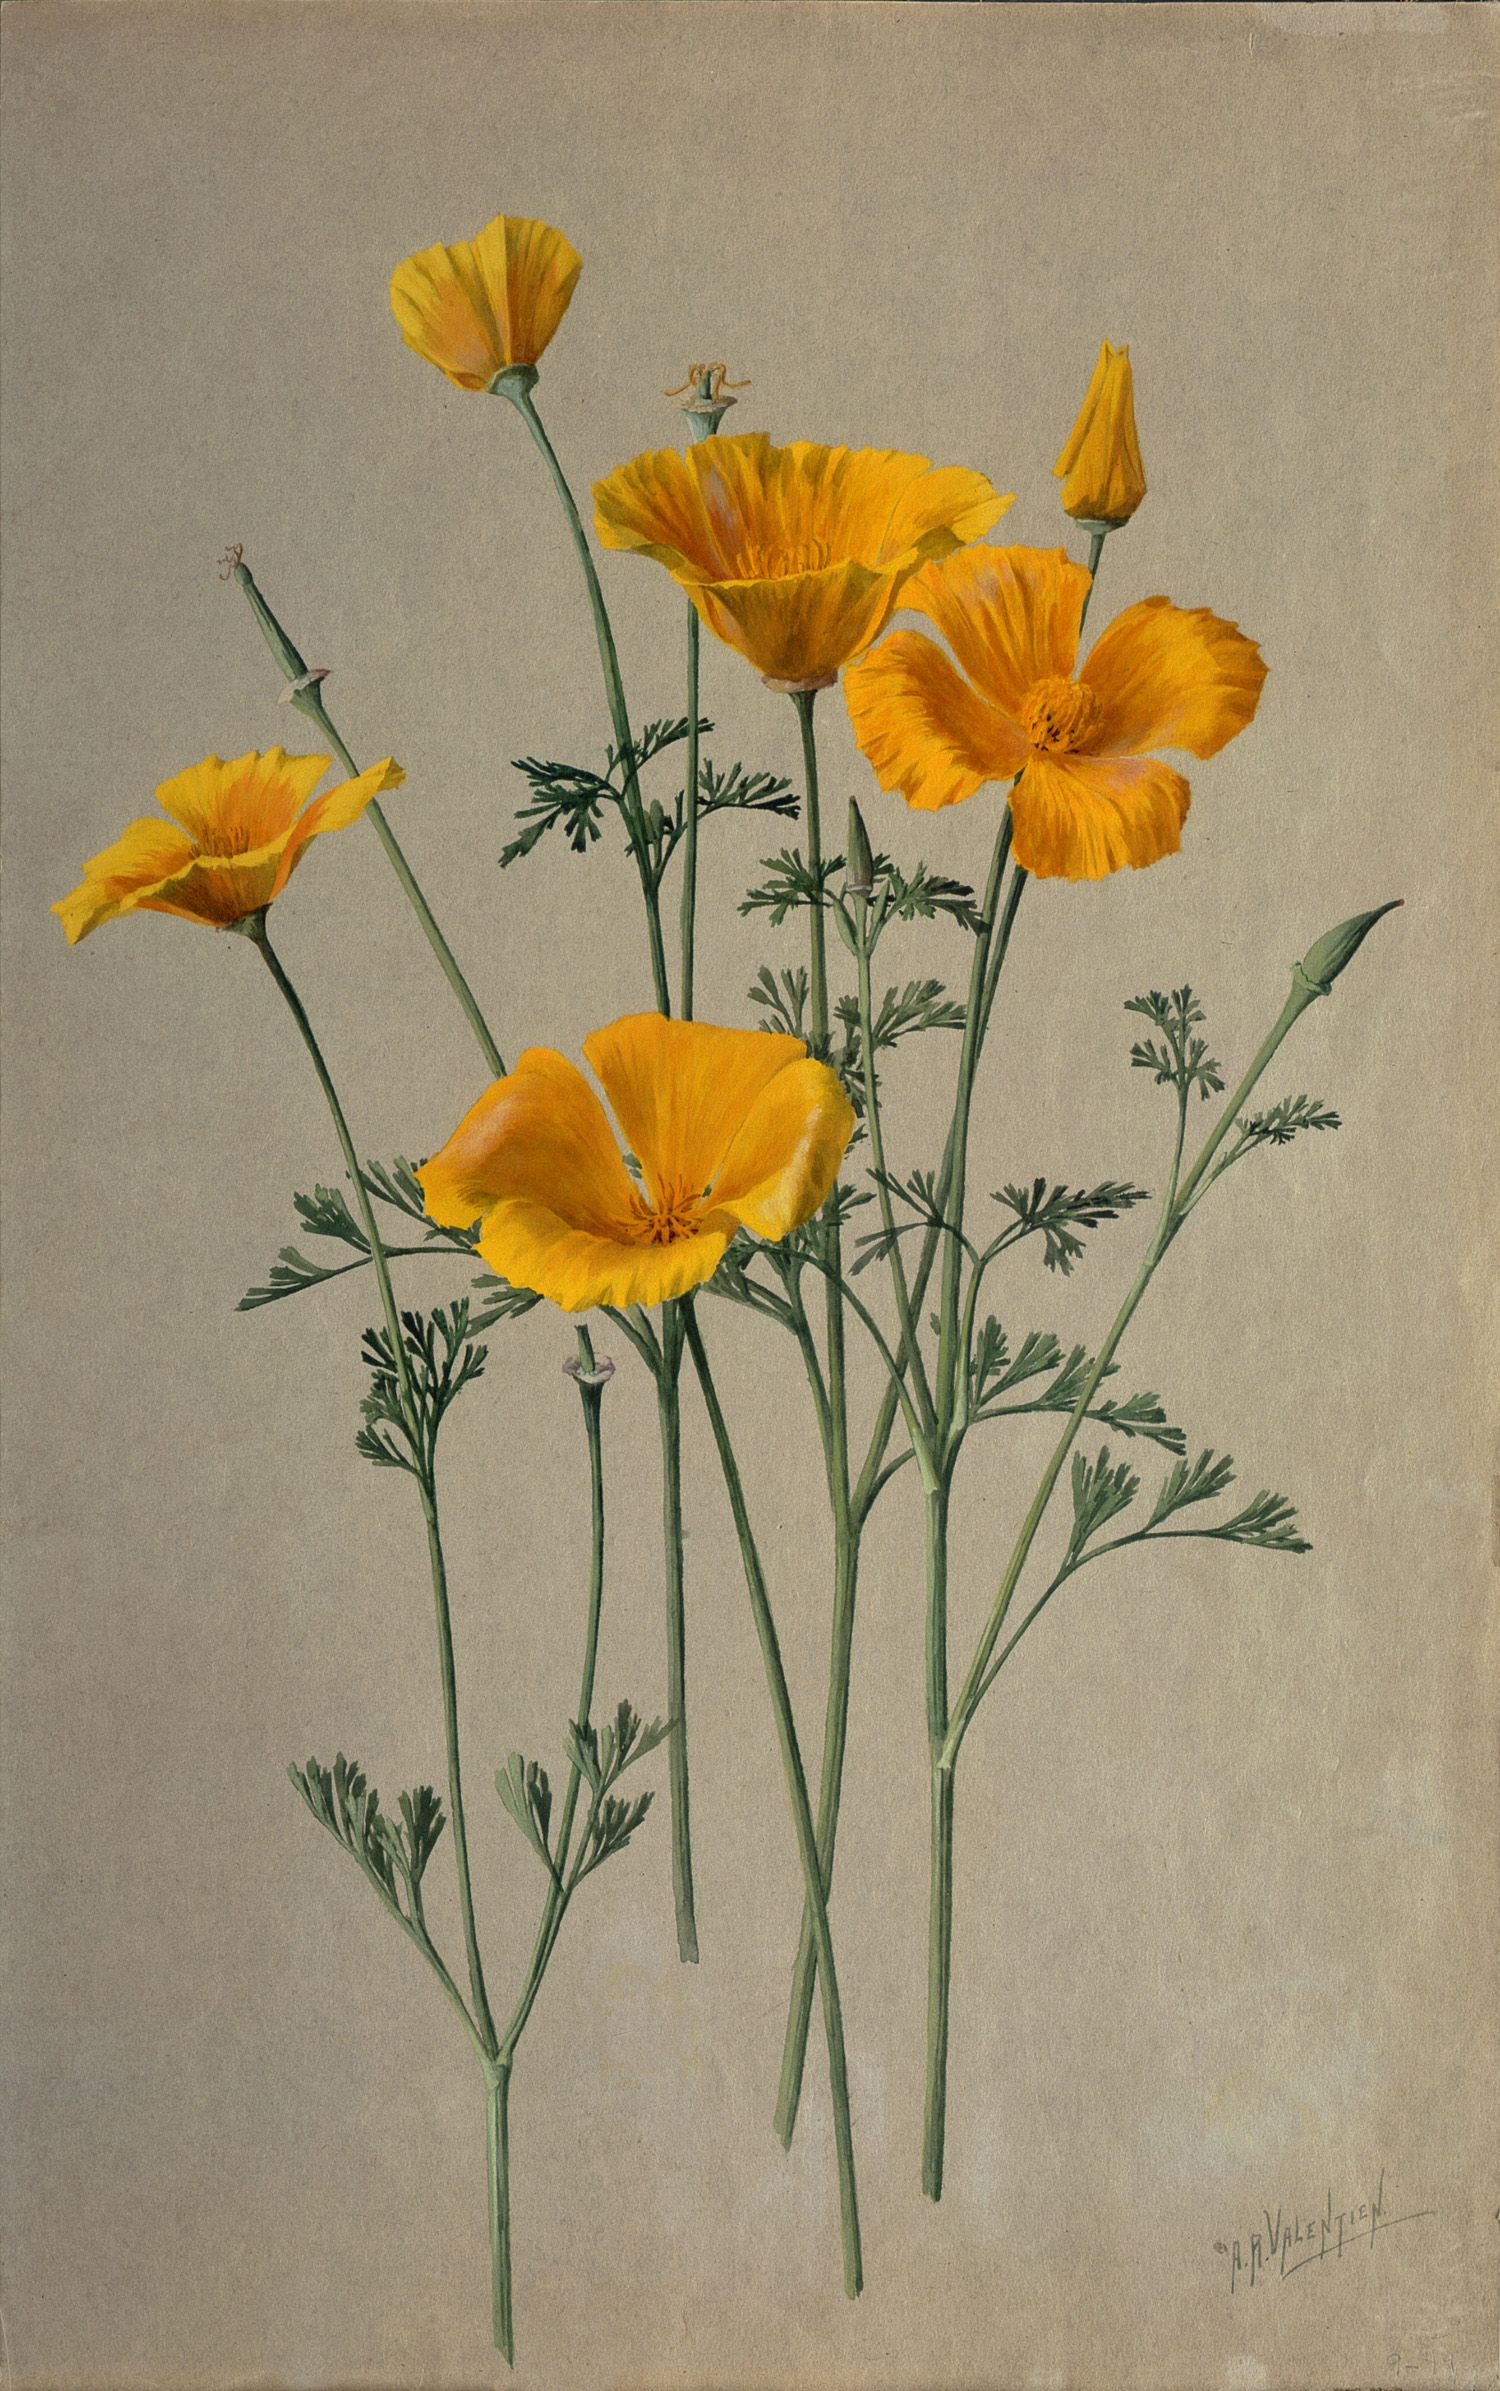 California Golden Poppy | Natural Beauty in 2019 ...